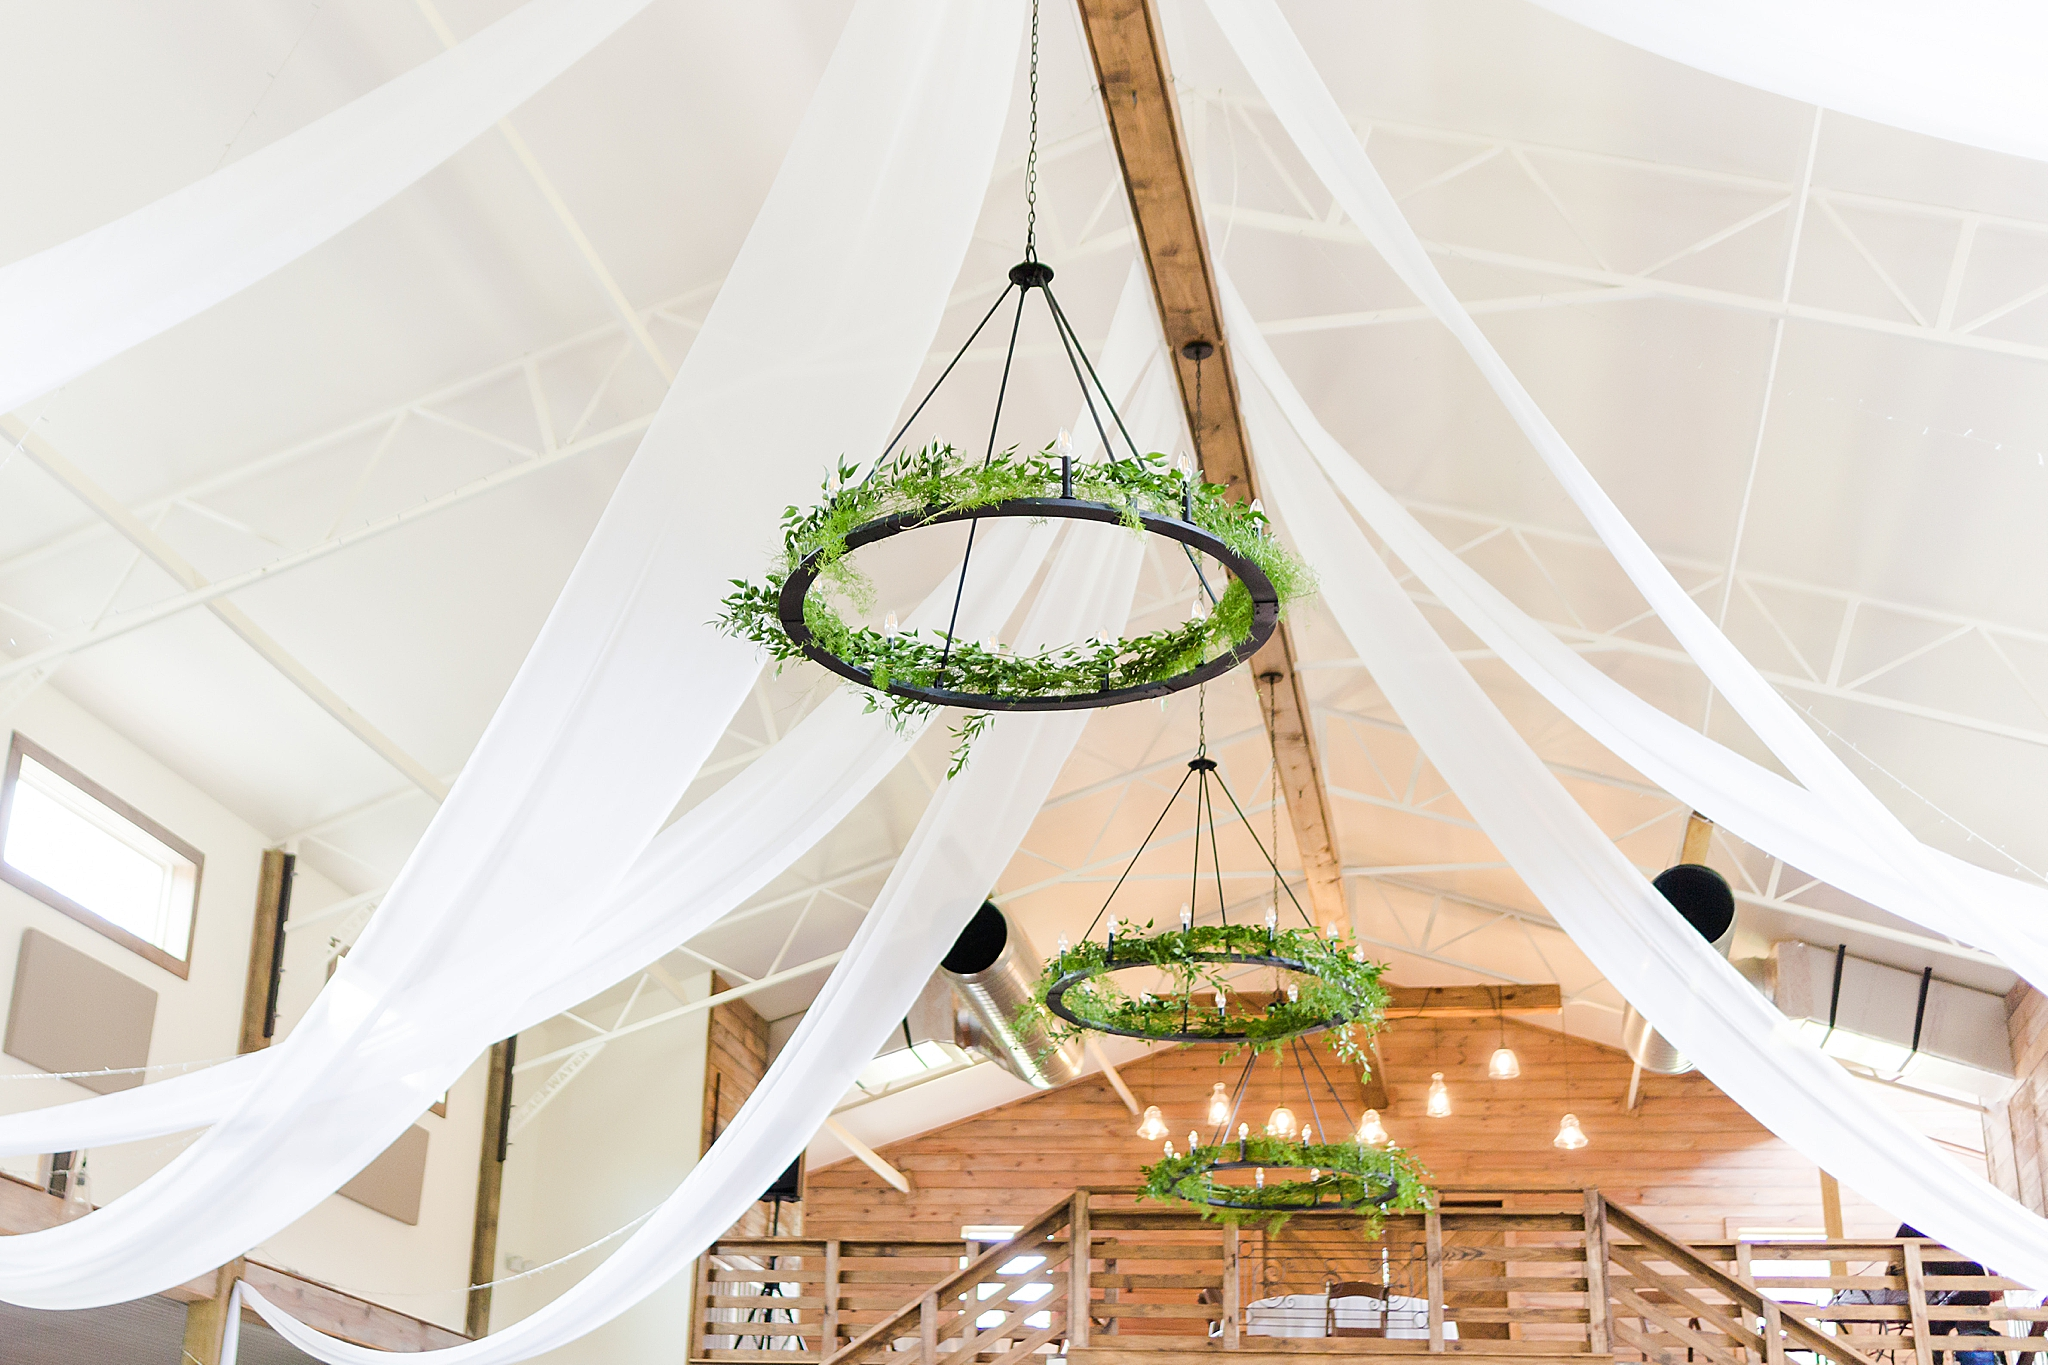 greenery hanging from ceiling at Izenstone